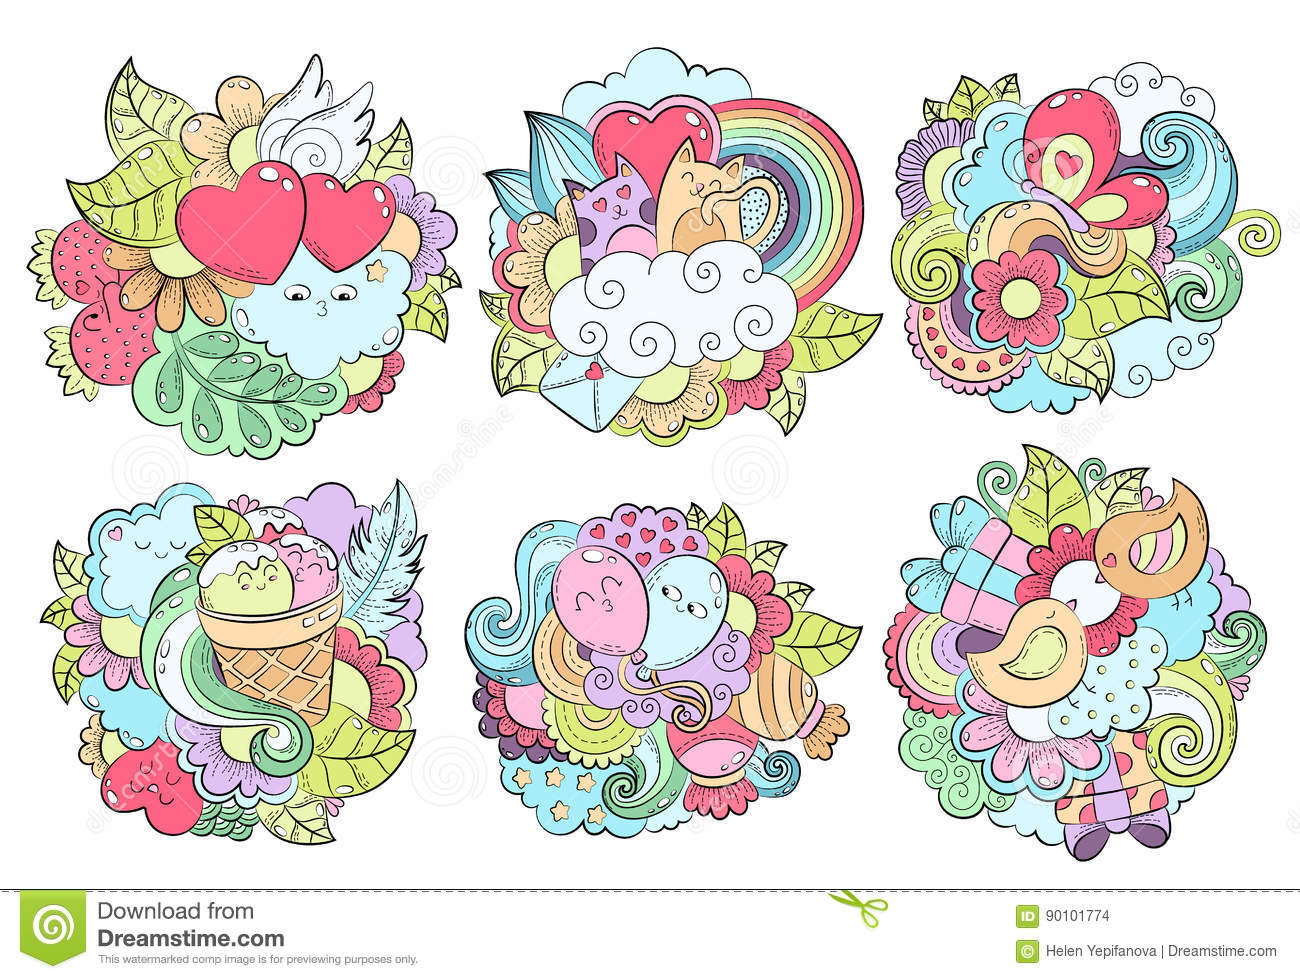 Download Pattern With Hand Drawn Heart, Cat, Balloon, Cloud, Strawberry,  Bird